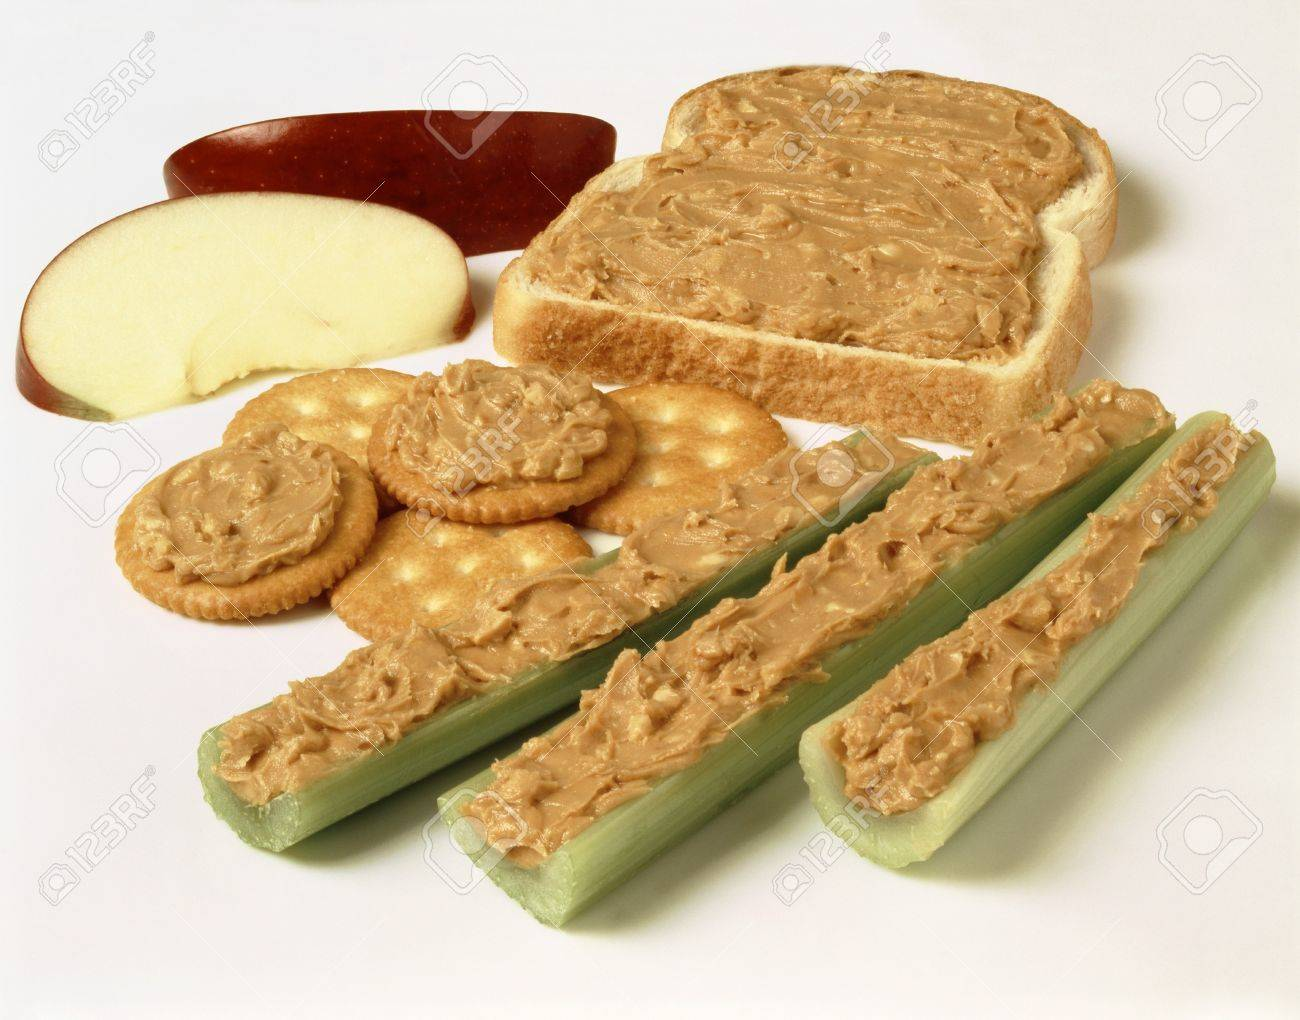 http://previews.123rf.com/images/stockfood/stockfood1409/stockfood140900791/31224382-Celery-white-bread-and-crackers-with-peanut-butter-Stock-Photo.jpg